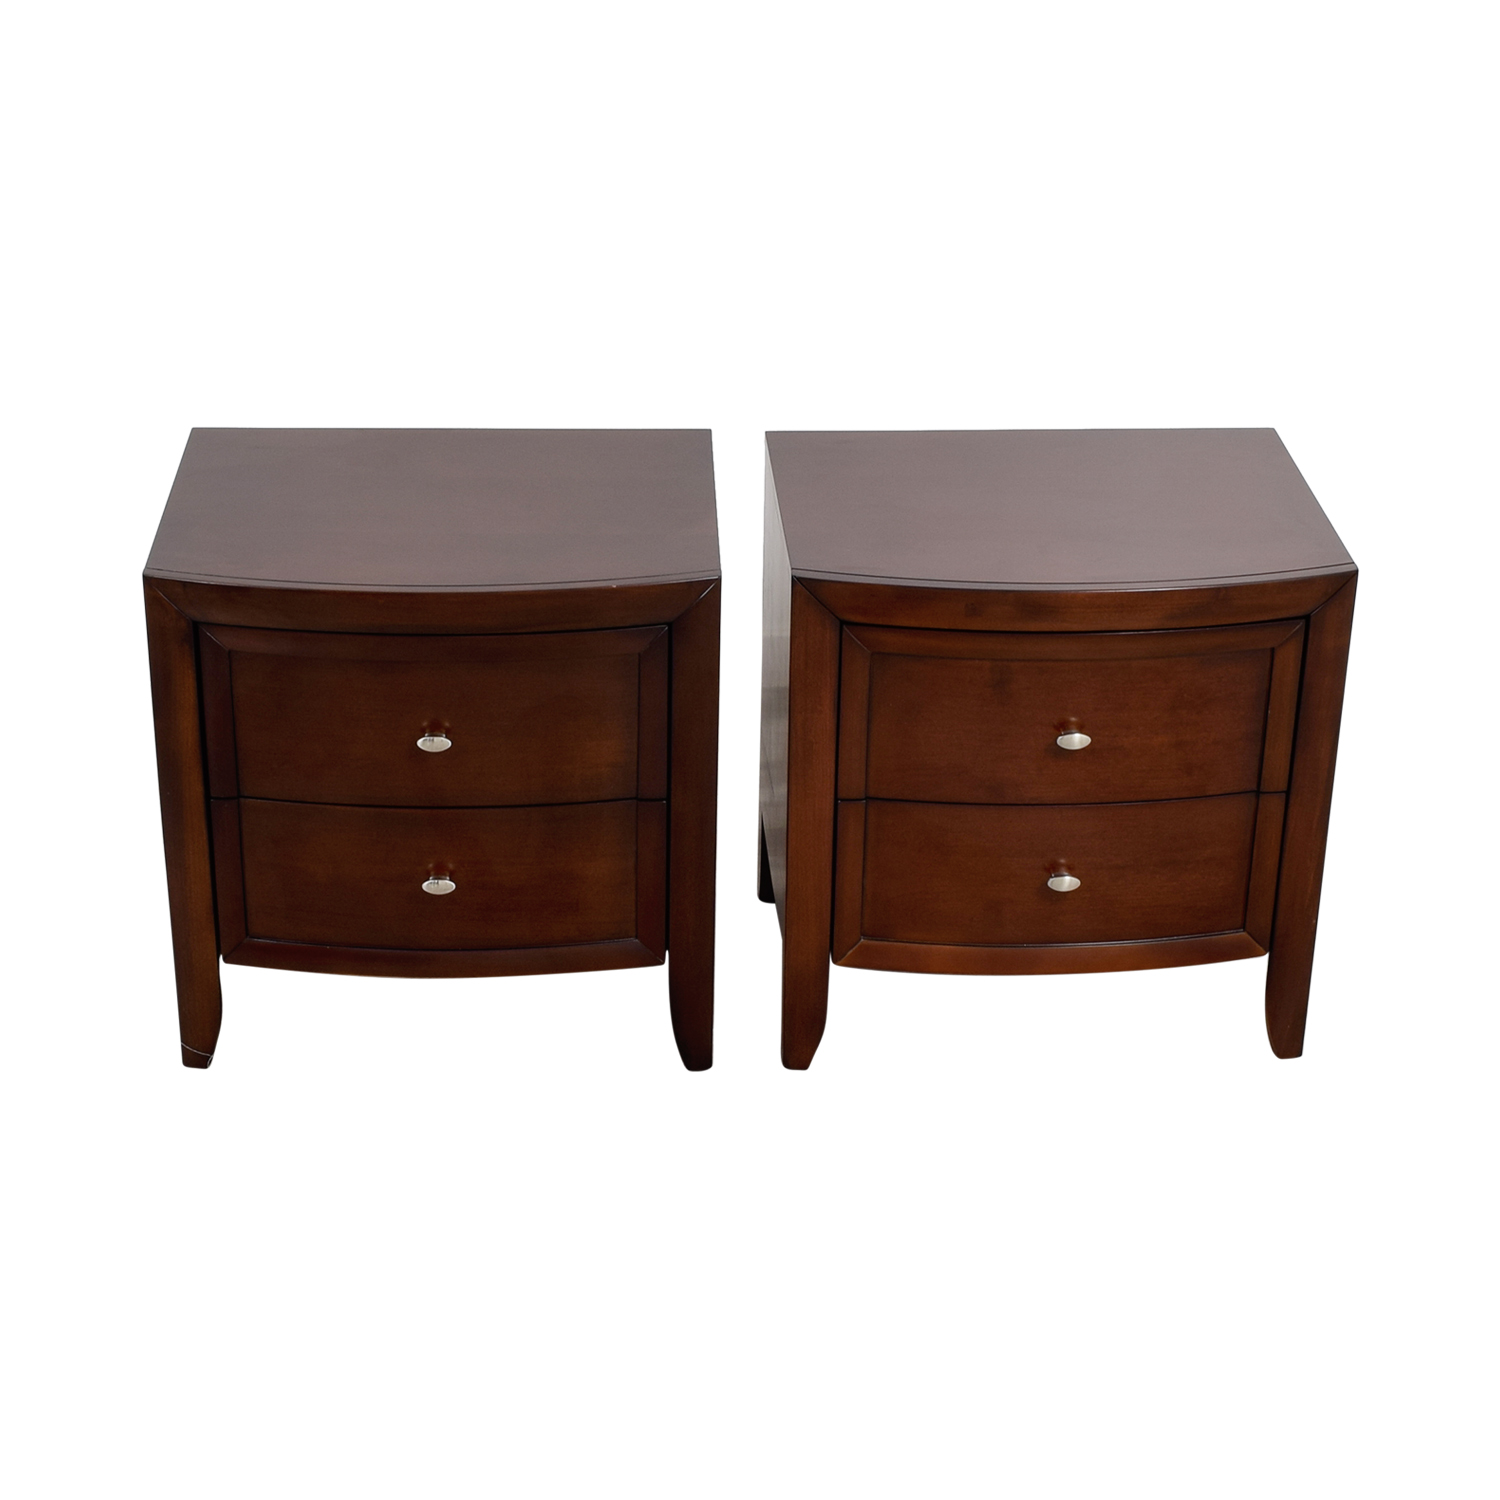 Macy's Macy's Yardley Two-Drawer Nightstands used